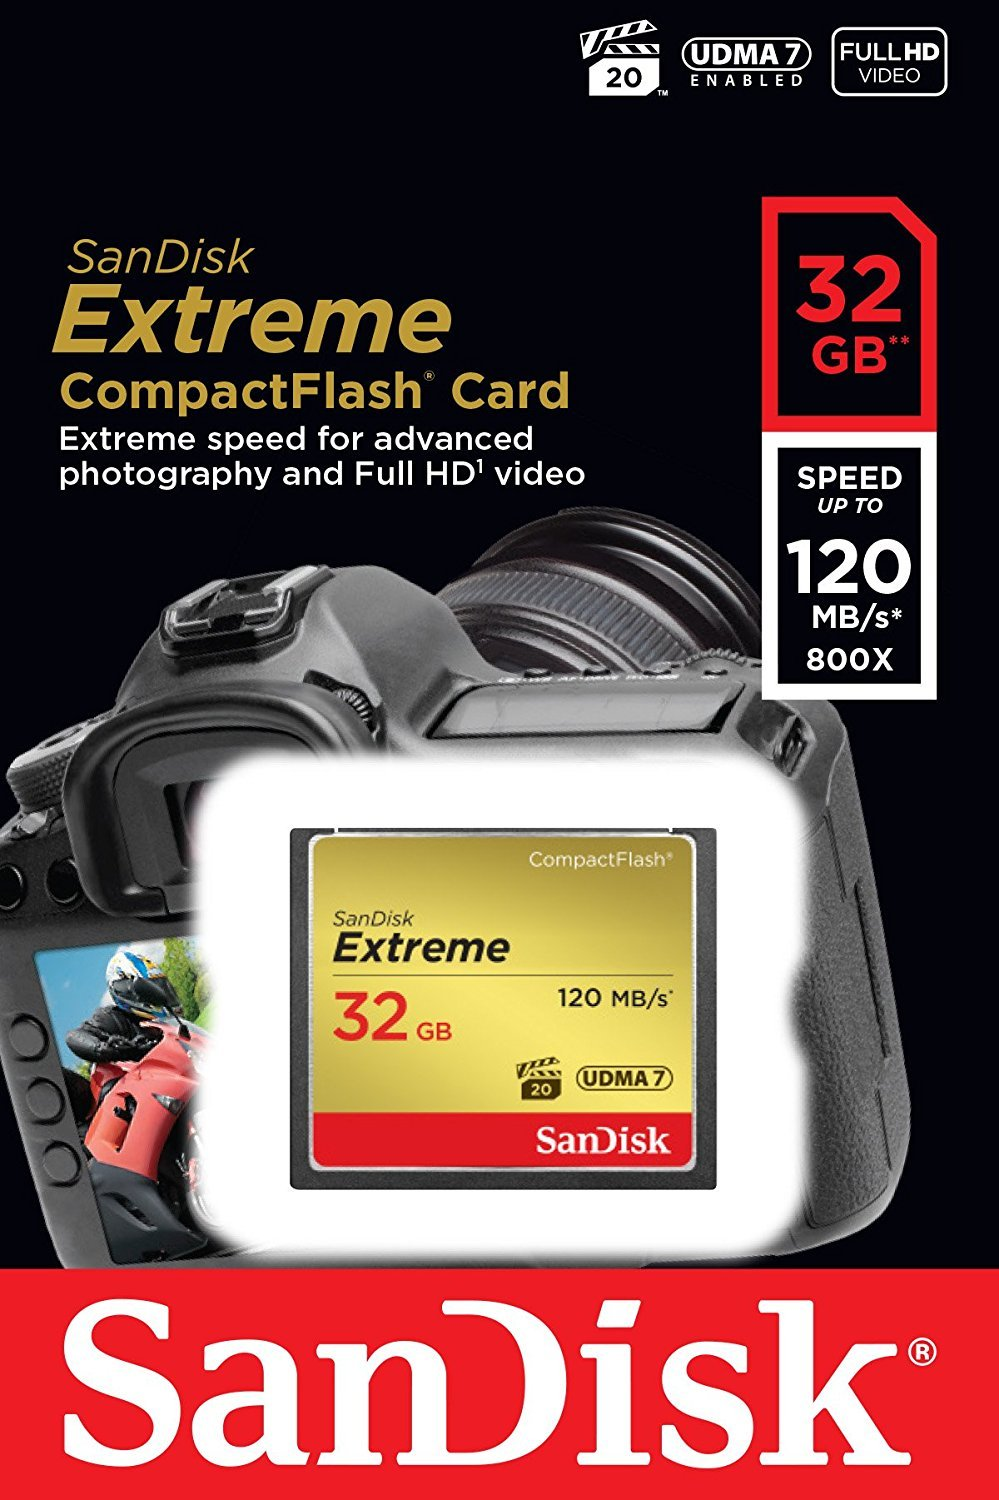 SanDisk Extreme 32GB CompactFlash Memory Card works with Canon EOS 7D Mark II Digital DSLR Camera HD UDMA 7 (SDCFXSB… 2 Bundle includes (x1) 32GB CF Extreme SanDisk, (x1) Everything But Stromboli Microfiber Cloth, (x1) Combo Memory Card Reader (Color May Vary) - Includes CF, SD, Micro SD, M2, and MS, MSPD slots for easy transfer Compatible with Canon EOS 7D Mark II Digital DSLR Camera Professional-Grade Video Capture - VPG-20 ensures sustained data recording rate of 20MB/s for a smooth and unbroken video stream